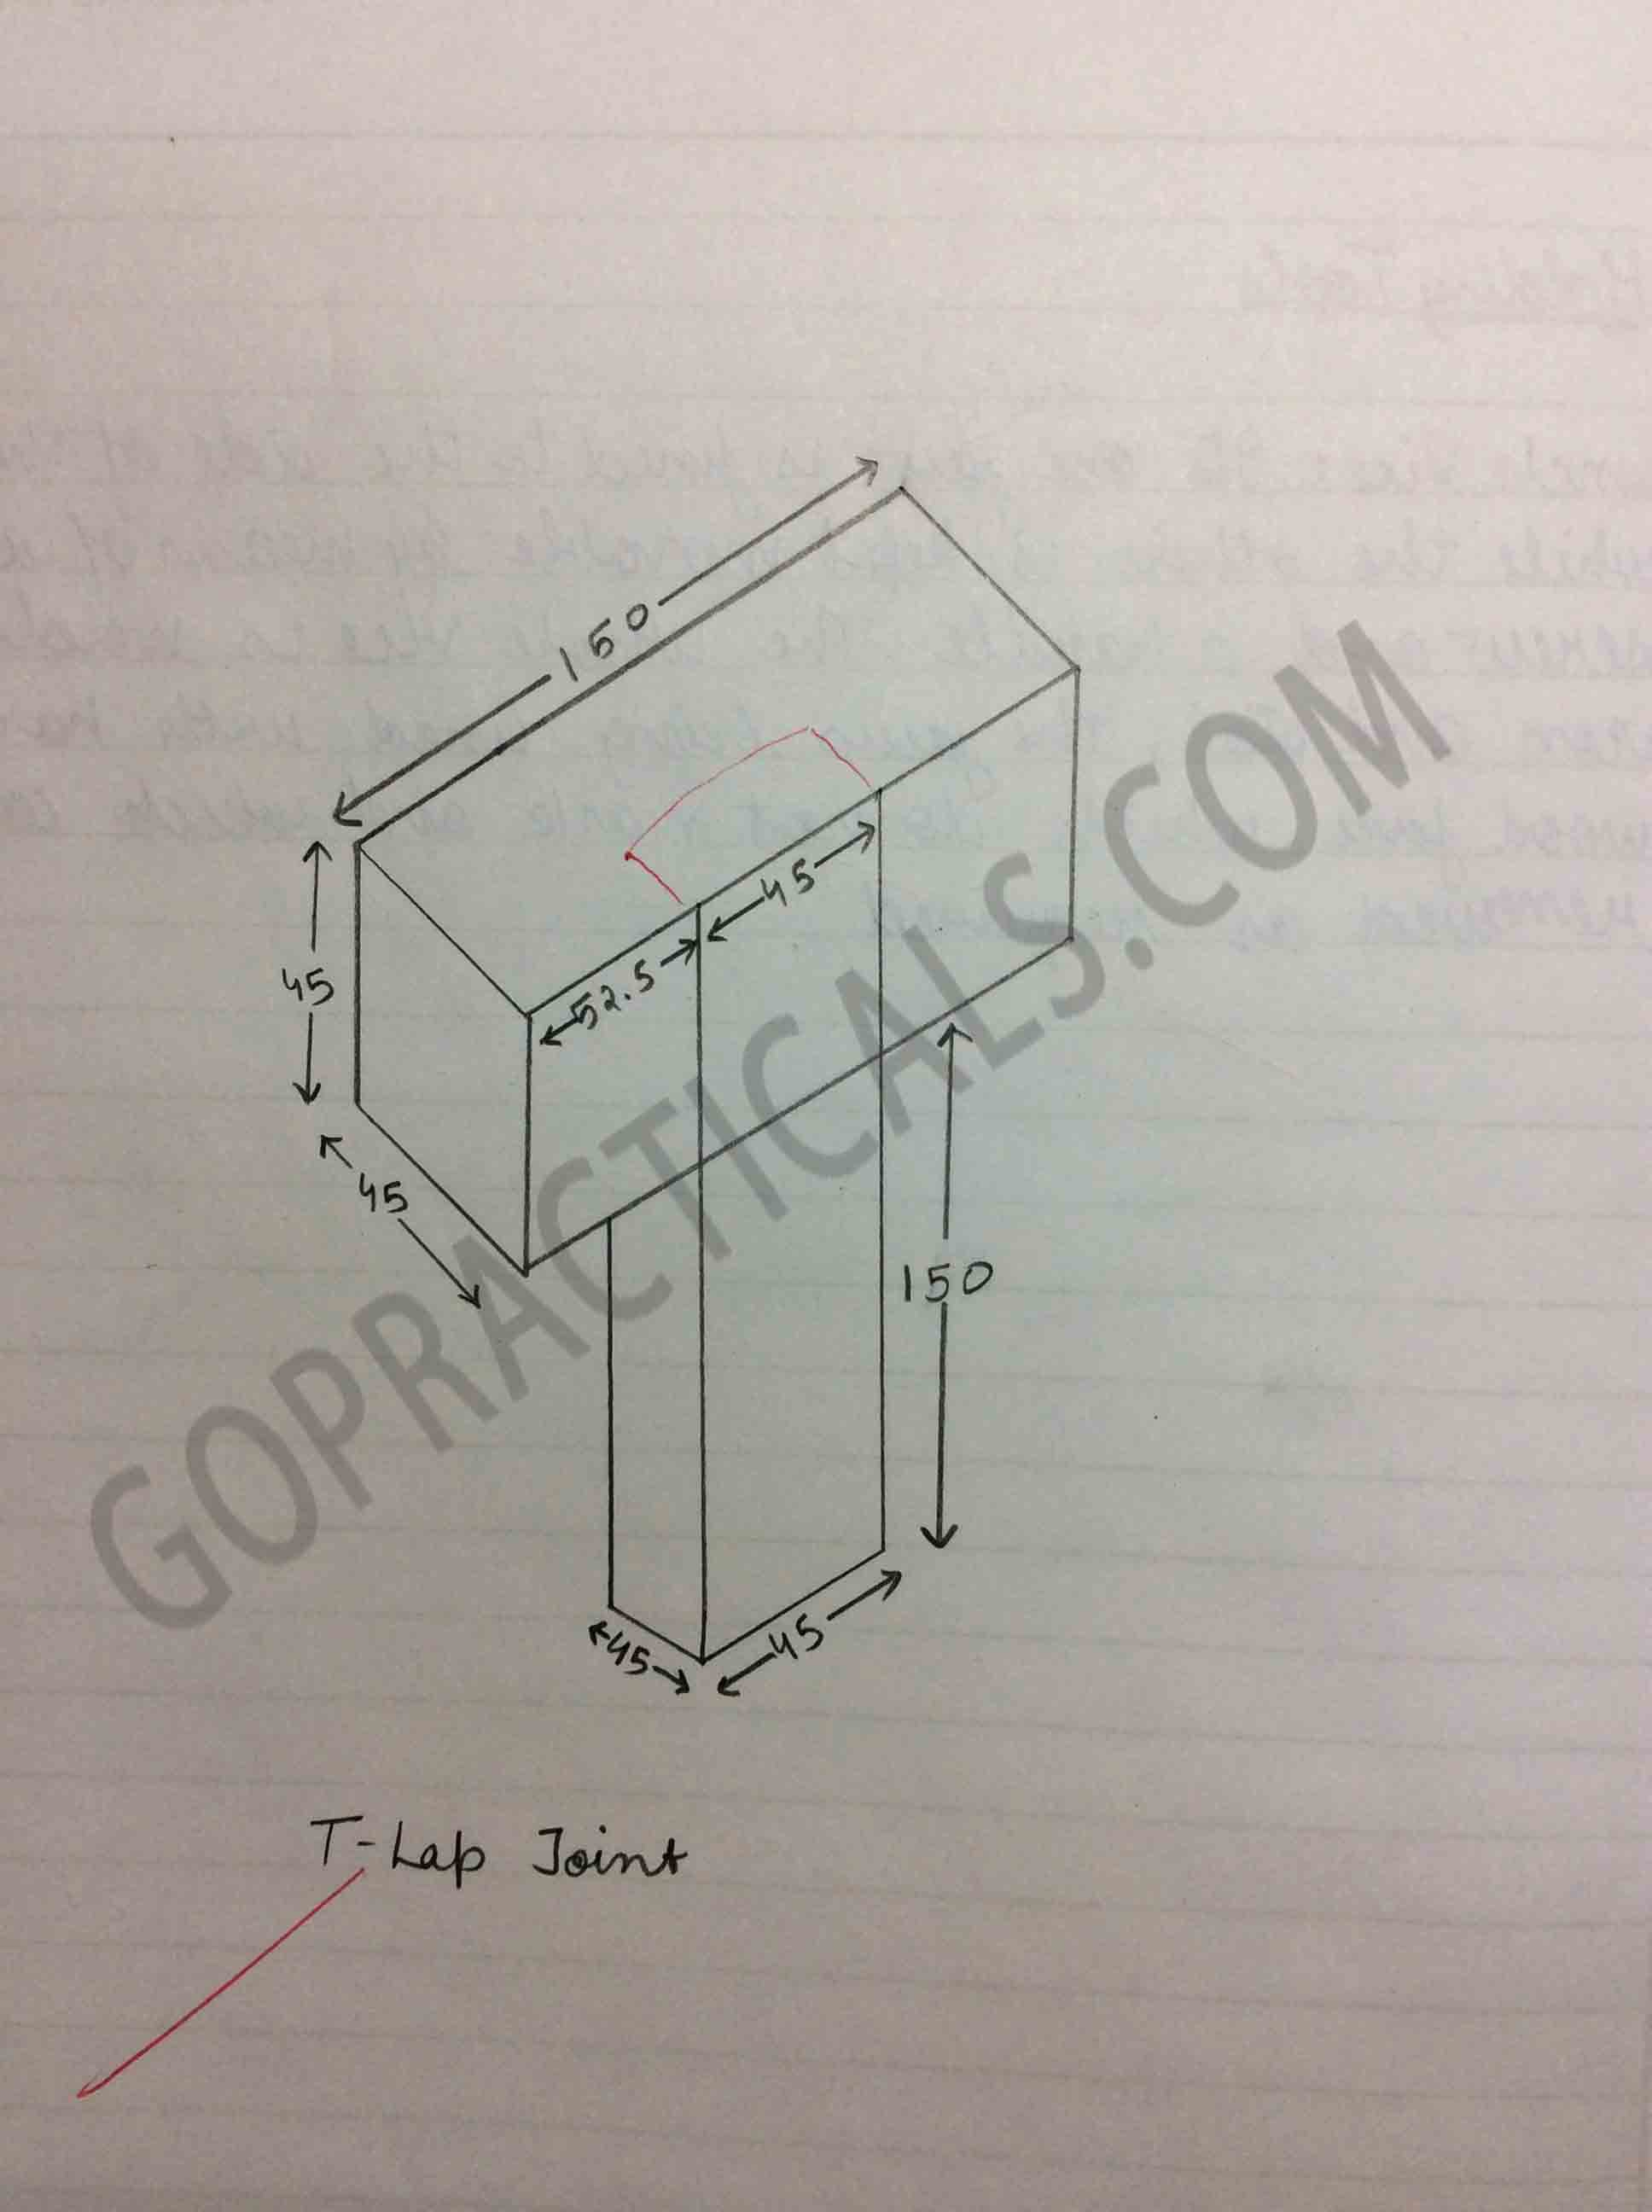 Experiment for the T lap Joint-4